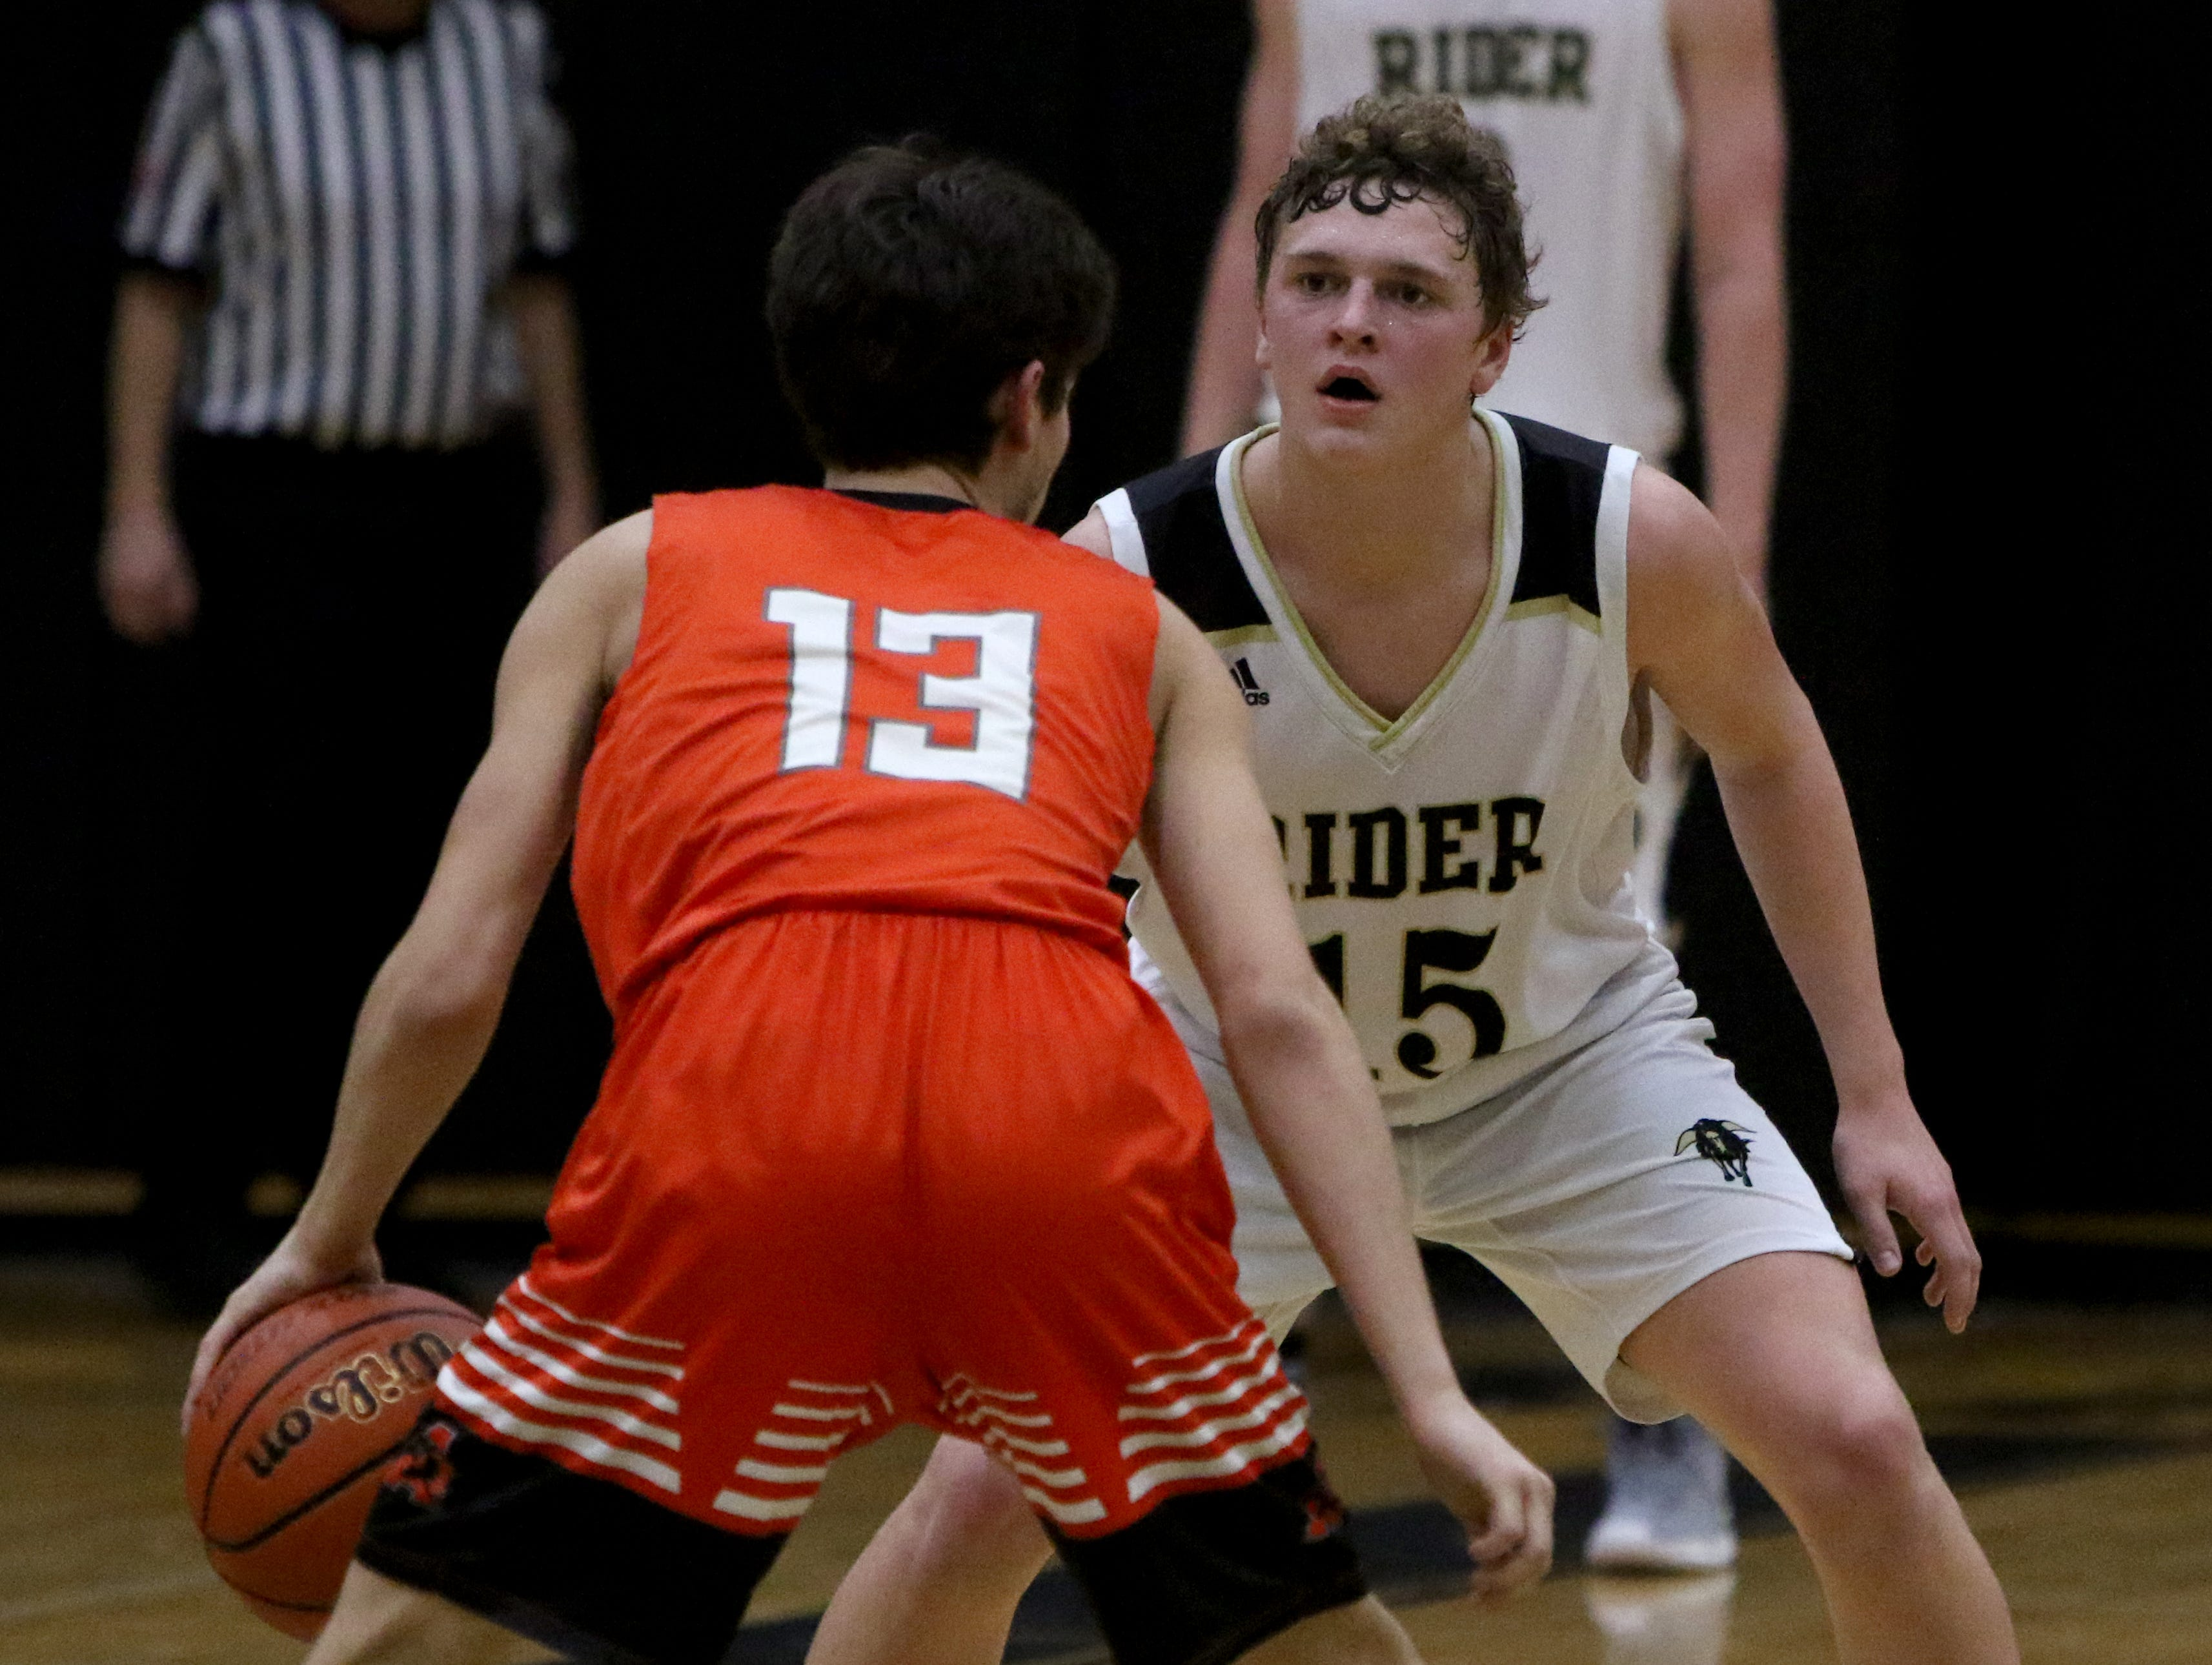 Rider's Carson Sager guards Aledo's Austin Hawkins Tuesday, Feb. 5, 2019, at Rider. The Raiders defeated the Bearcats 64-51.